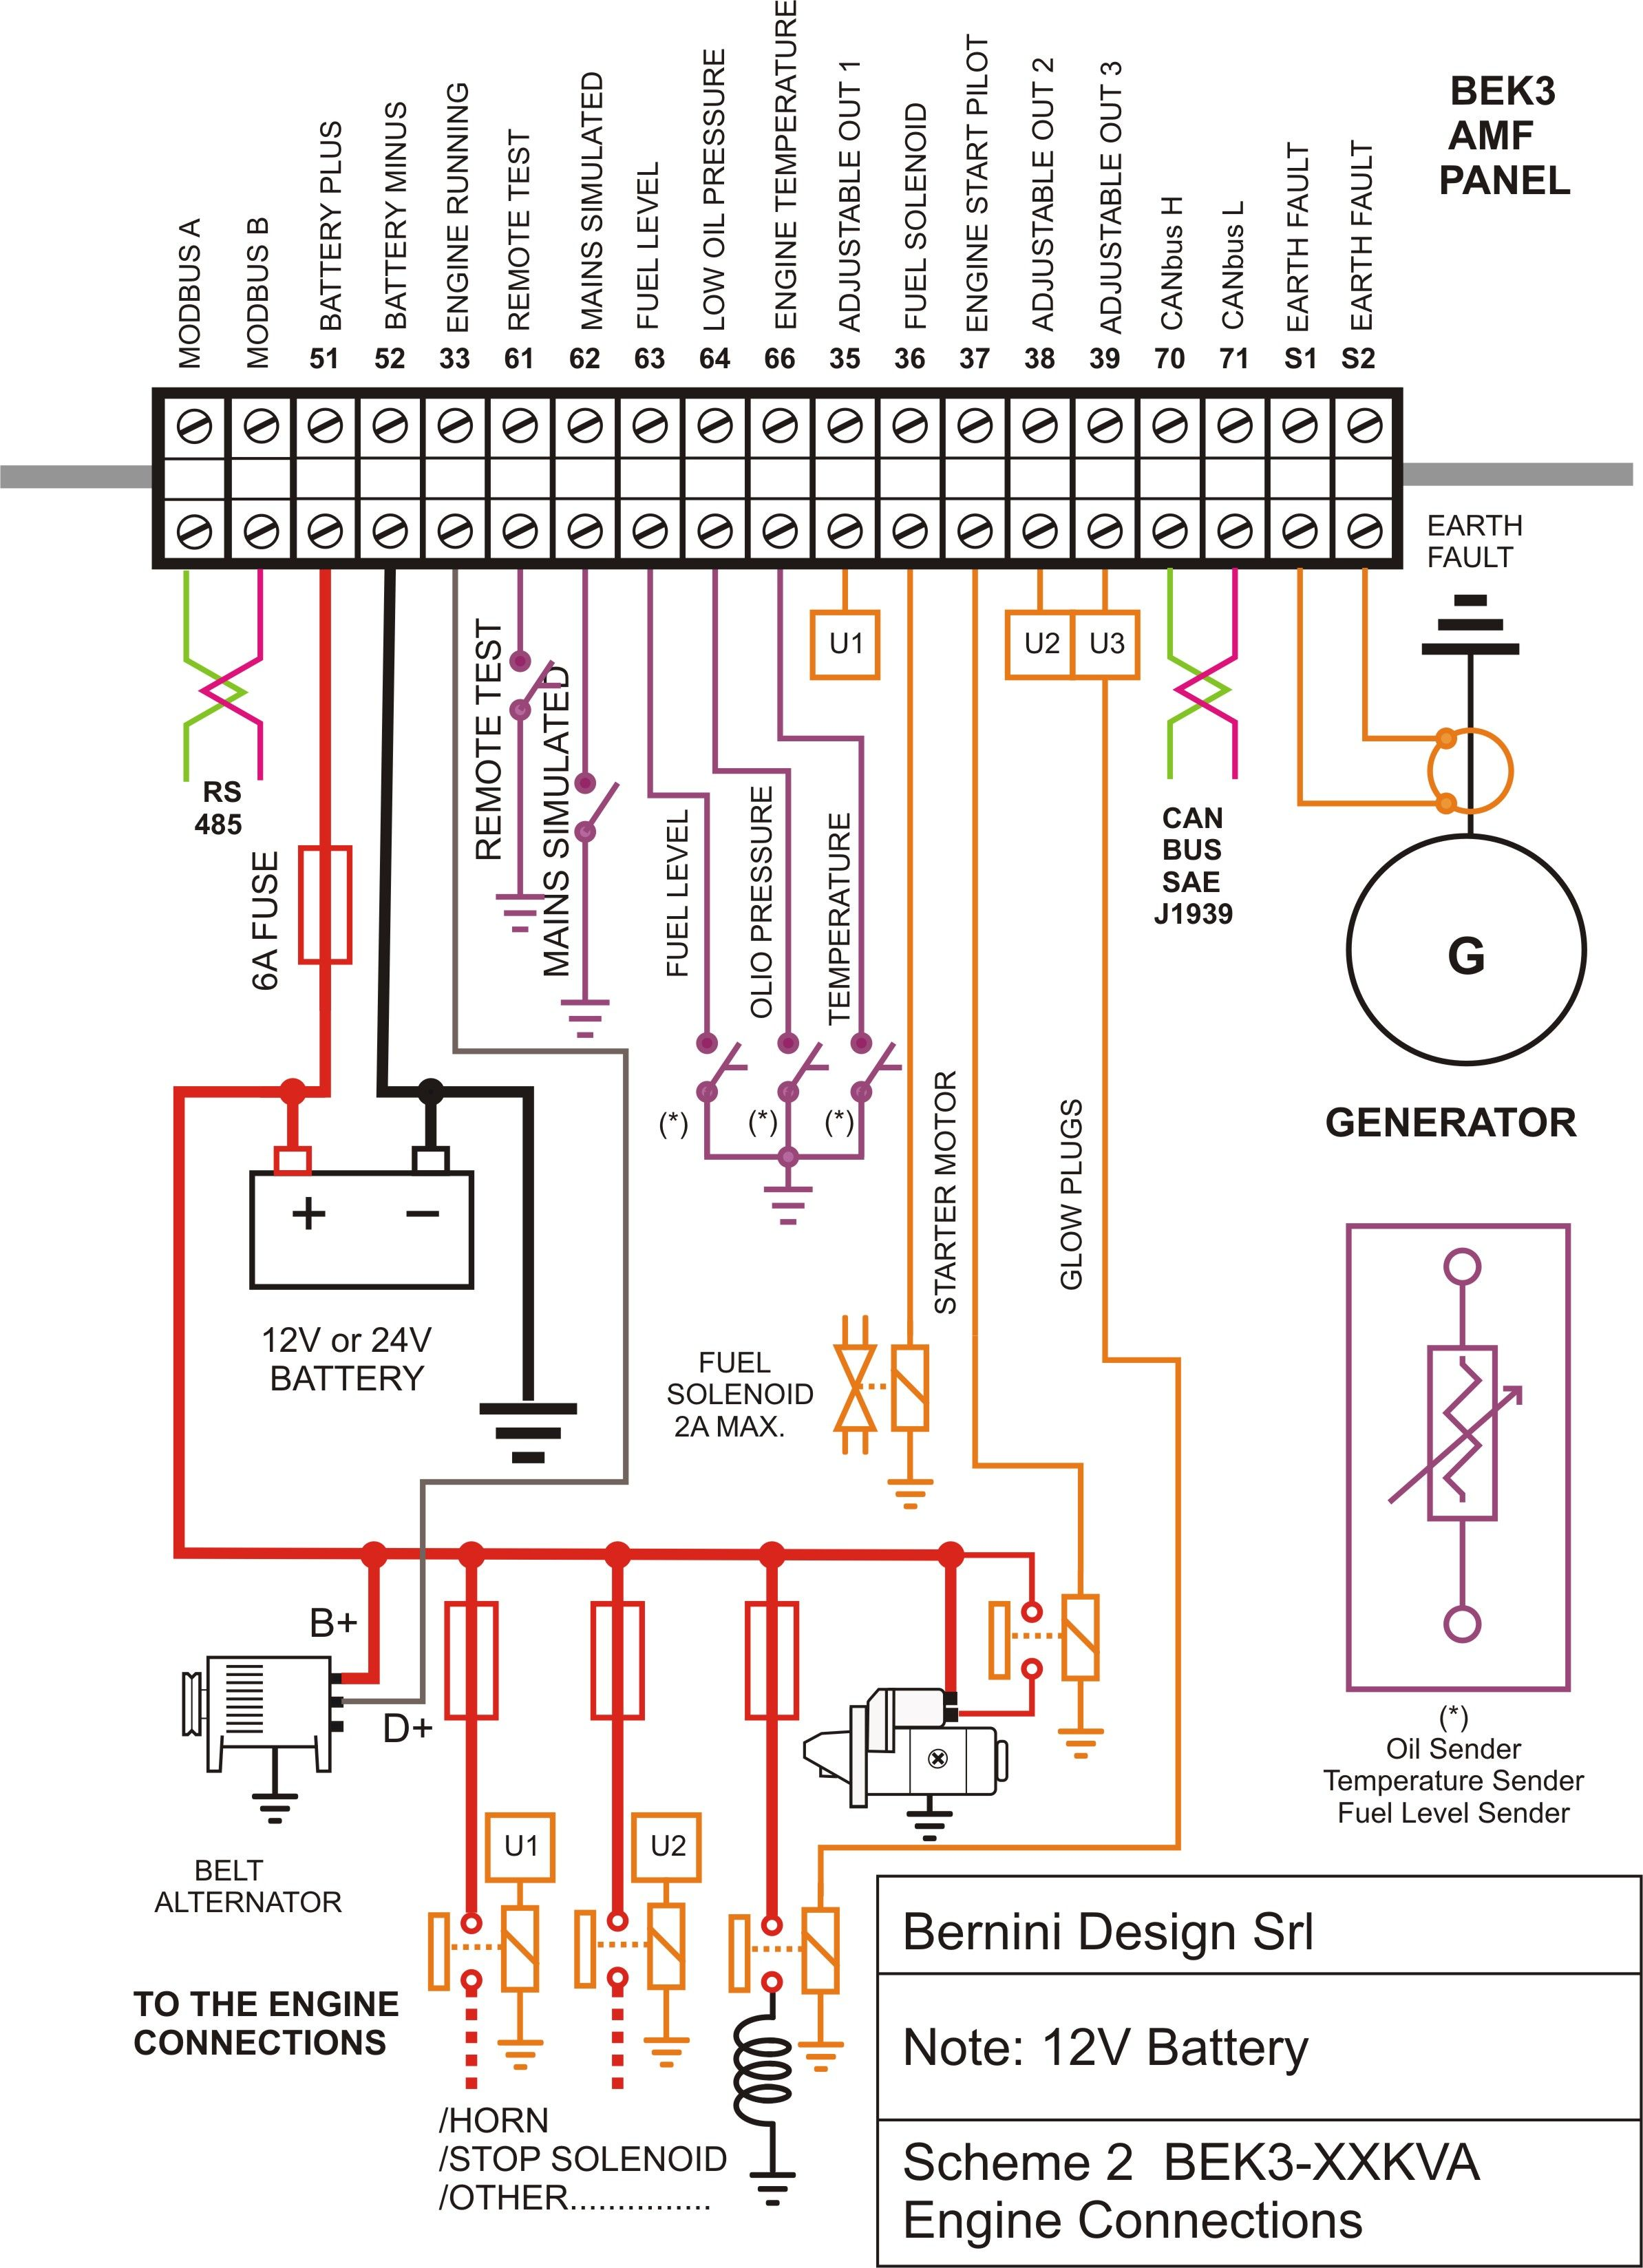 diesel generator control panel wiring diagram engine connections automotive wiring diagrams diesel generator control panel wiring diagram engine connections